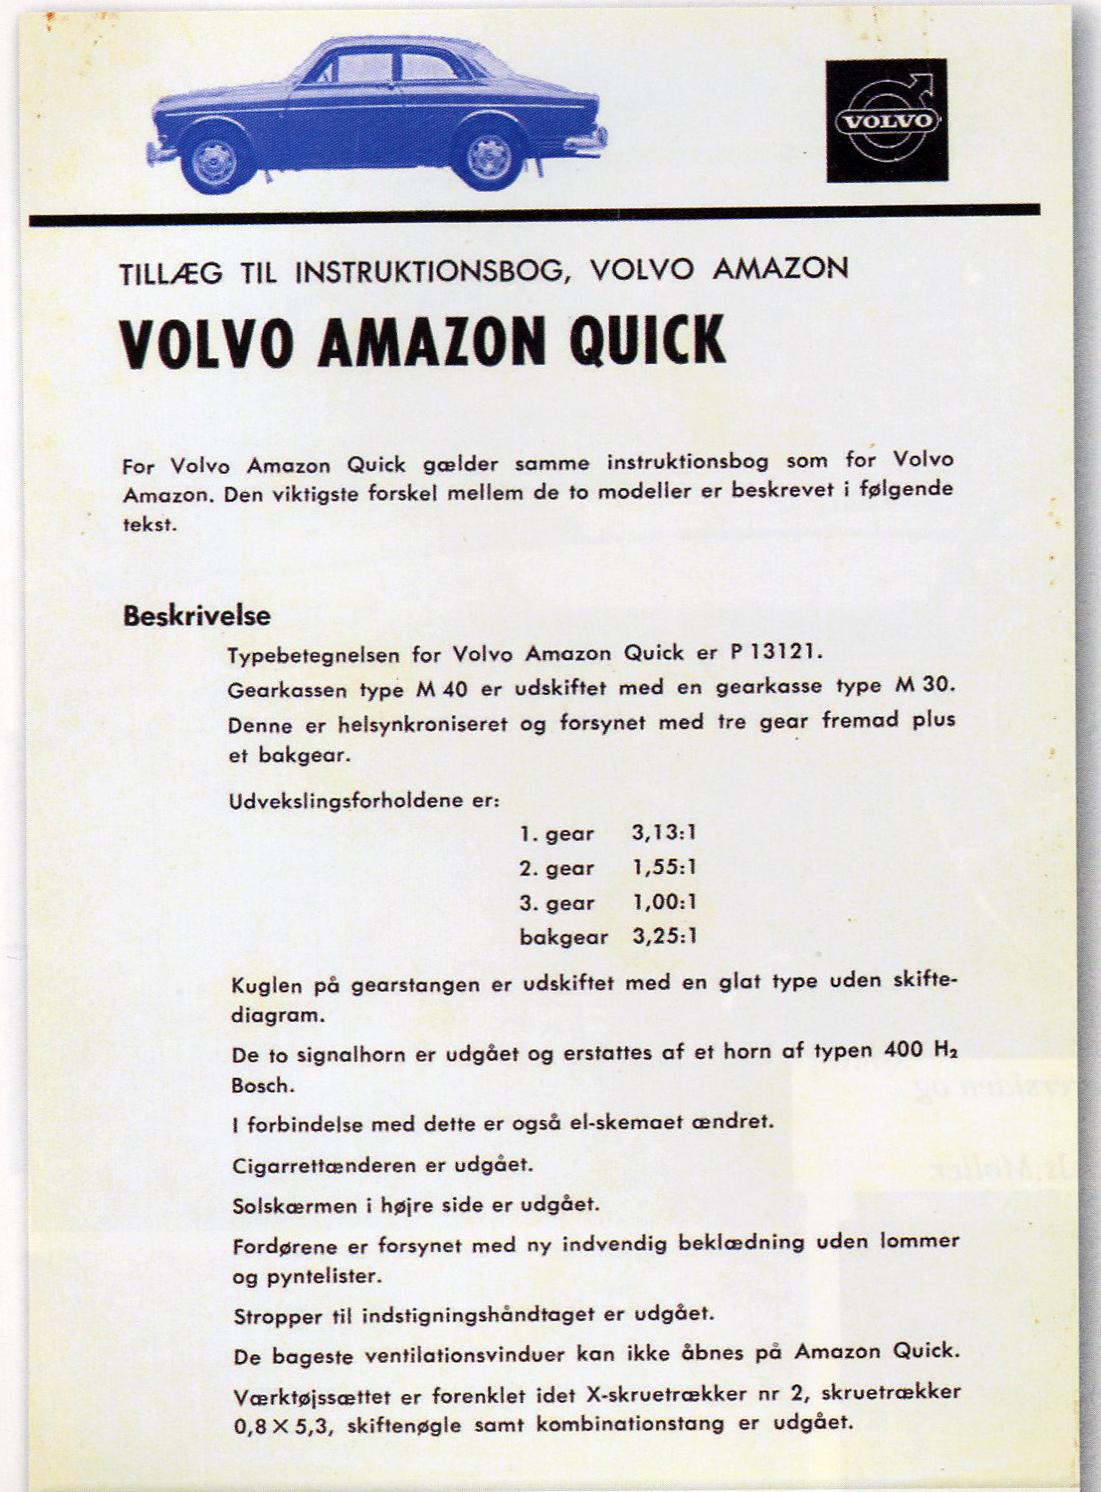 Volvo Amazon Picture Gallery An Independent Website With Photos 122s Wiring Diagram Tudor Becomes Sole Battery Supplier For The Starting P 120 Ch No 218496 And 220 30832